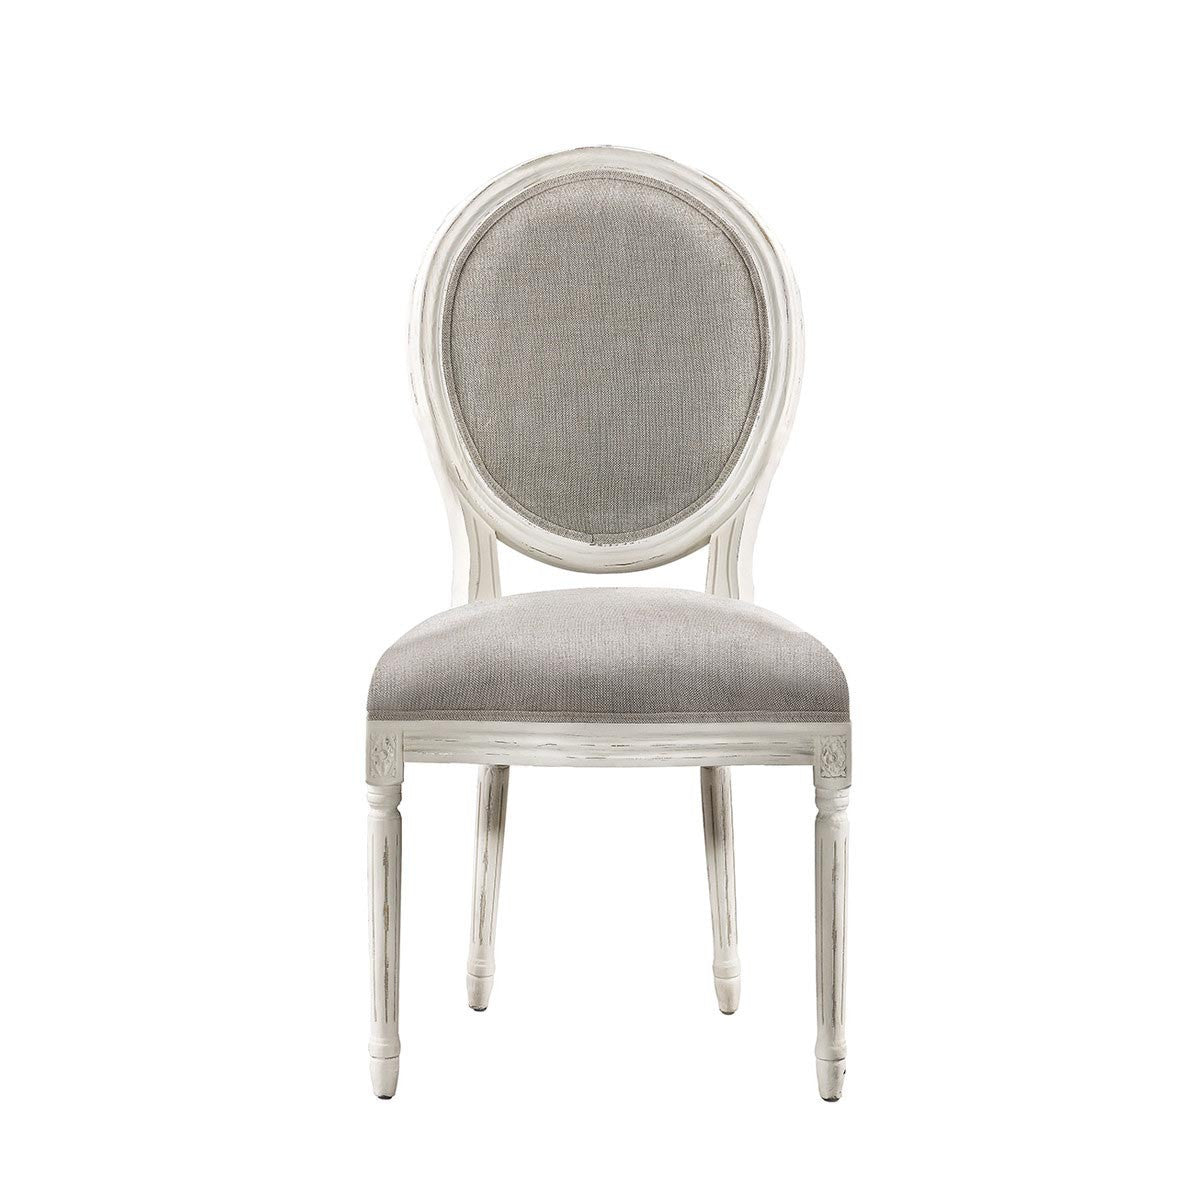 Antique White Side Chair Coaster 100562 Matisse Antique White Side Chair Seaboard Home Styles